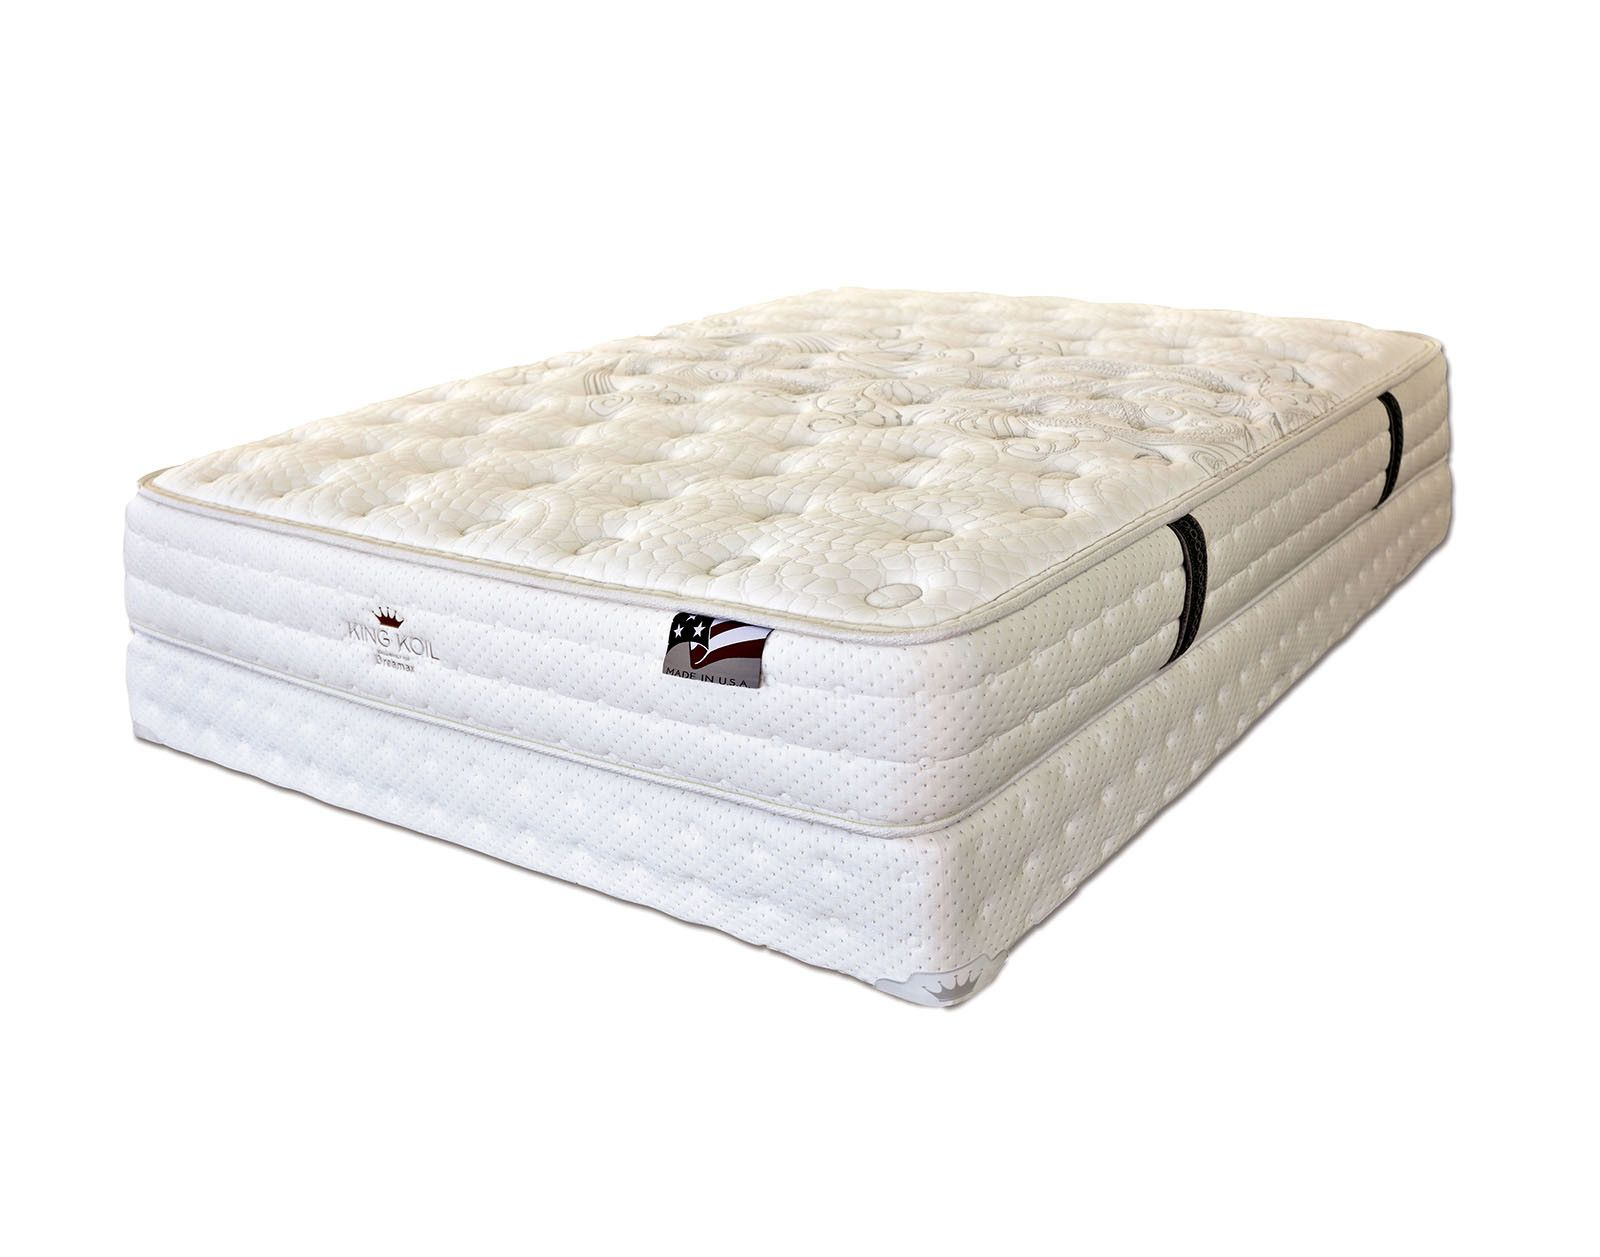 alyssum iii tight top e king size mattress dm157ek mattress king